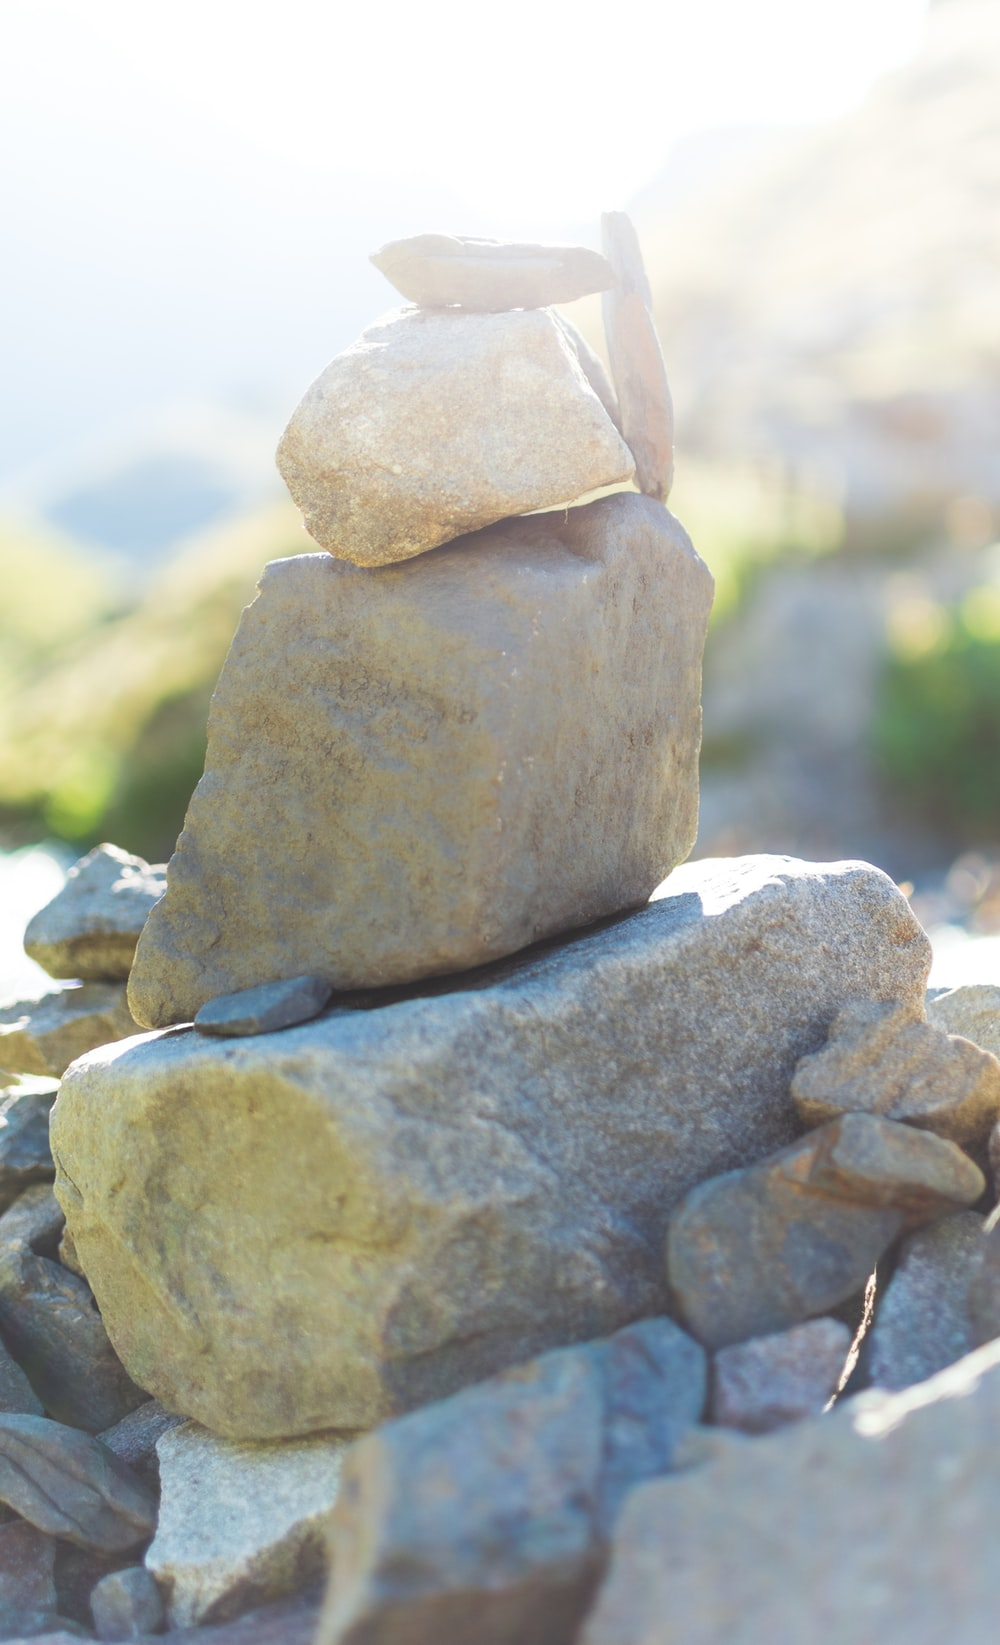 brown rock in close up photography